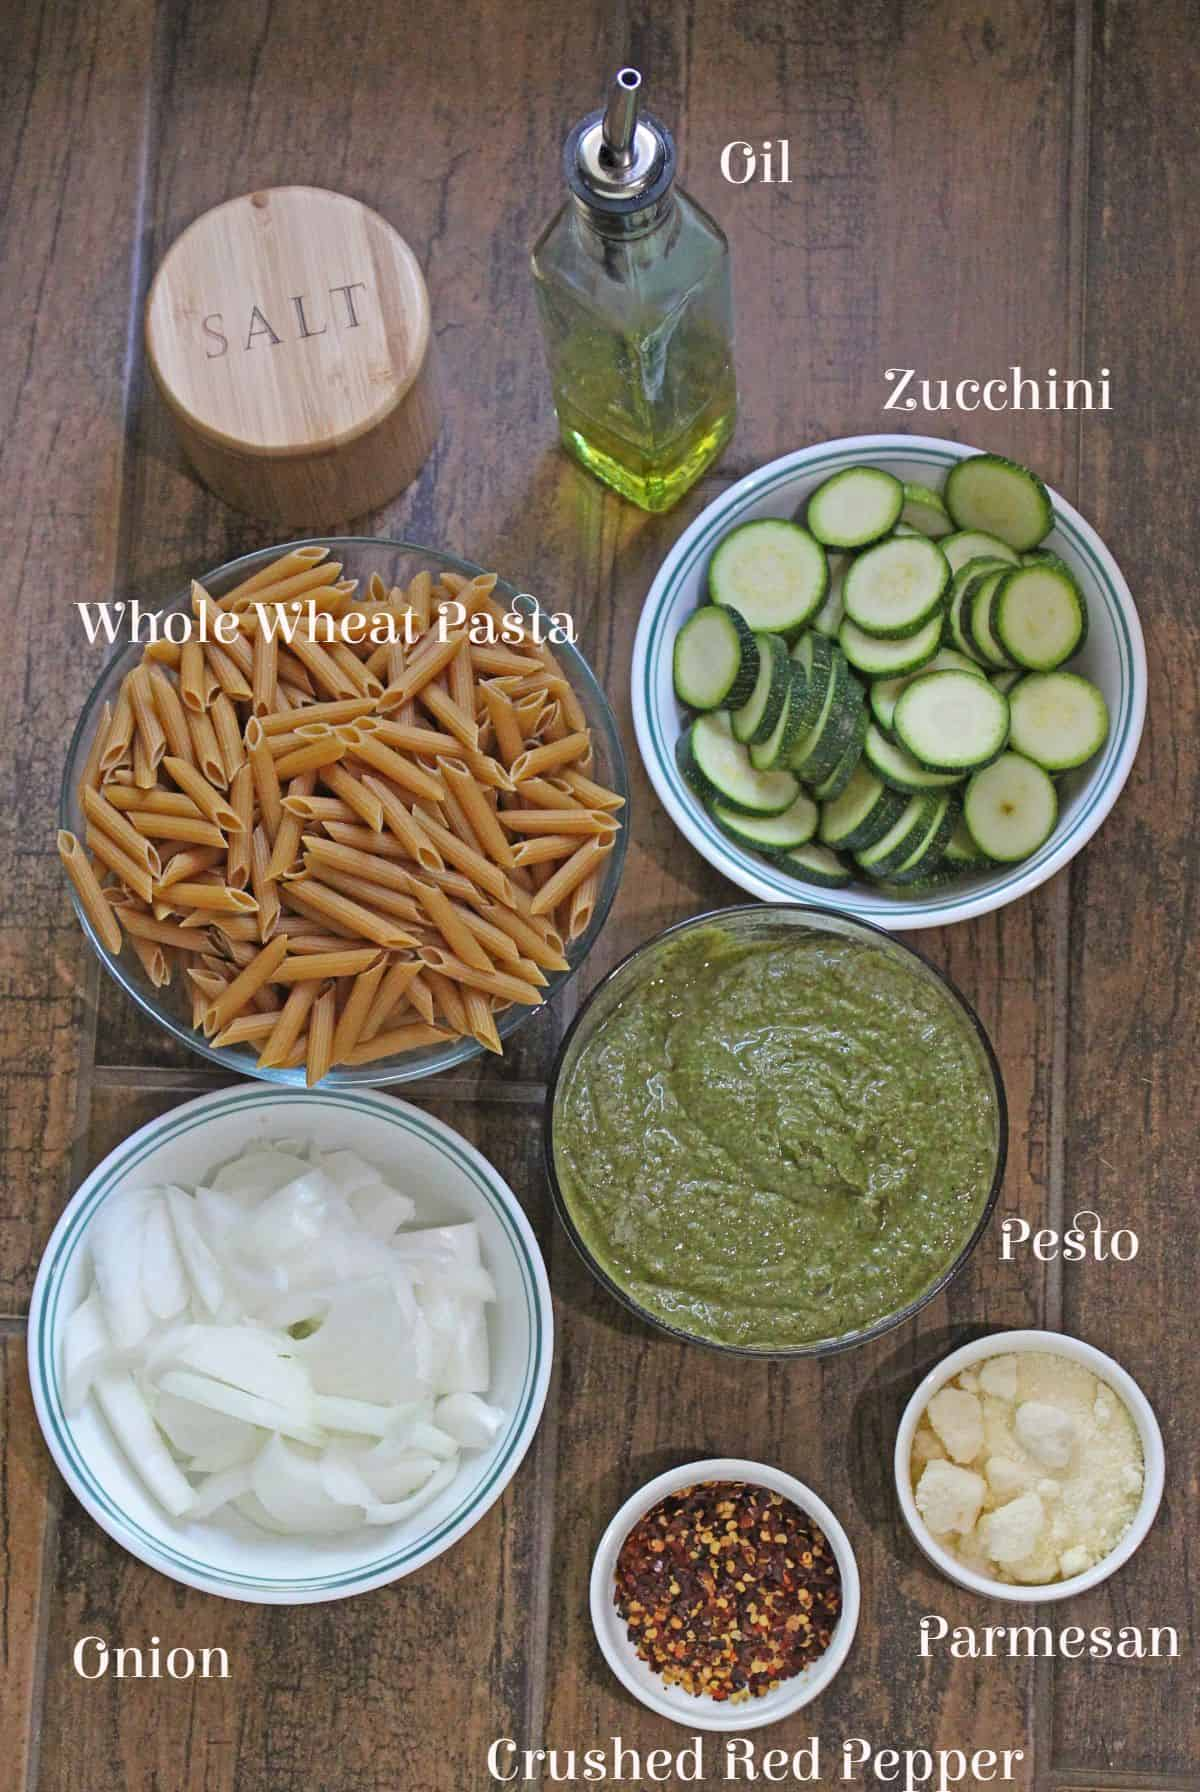 Ingredients laid out and labelled for zucchini pesto pasta